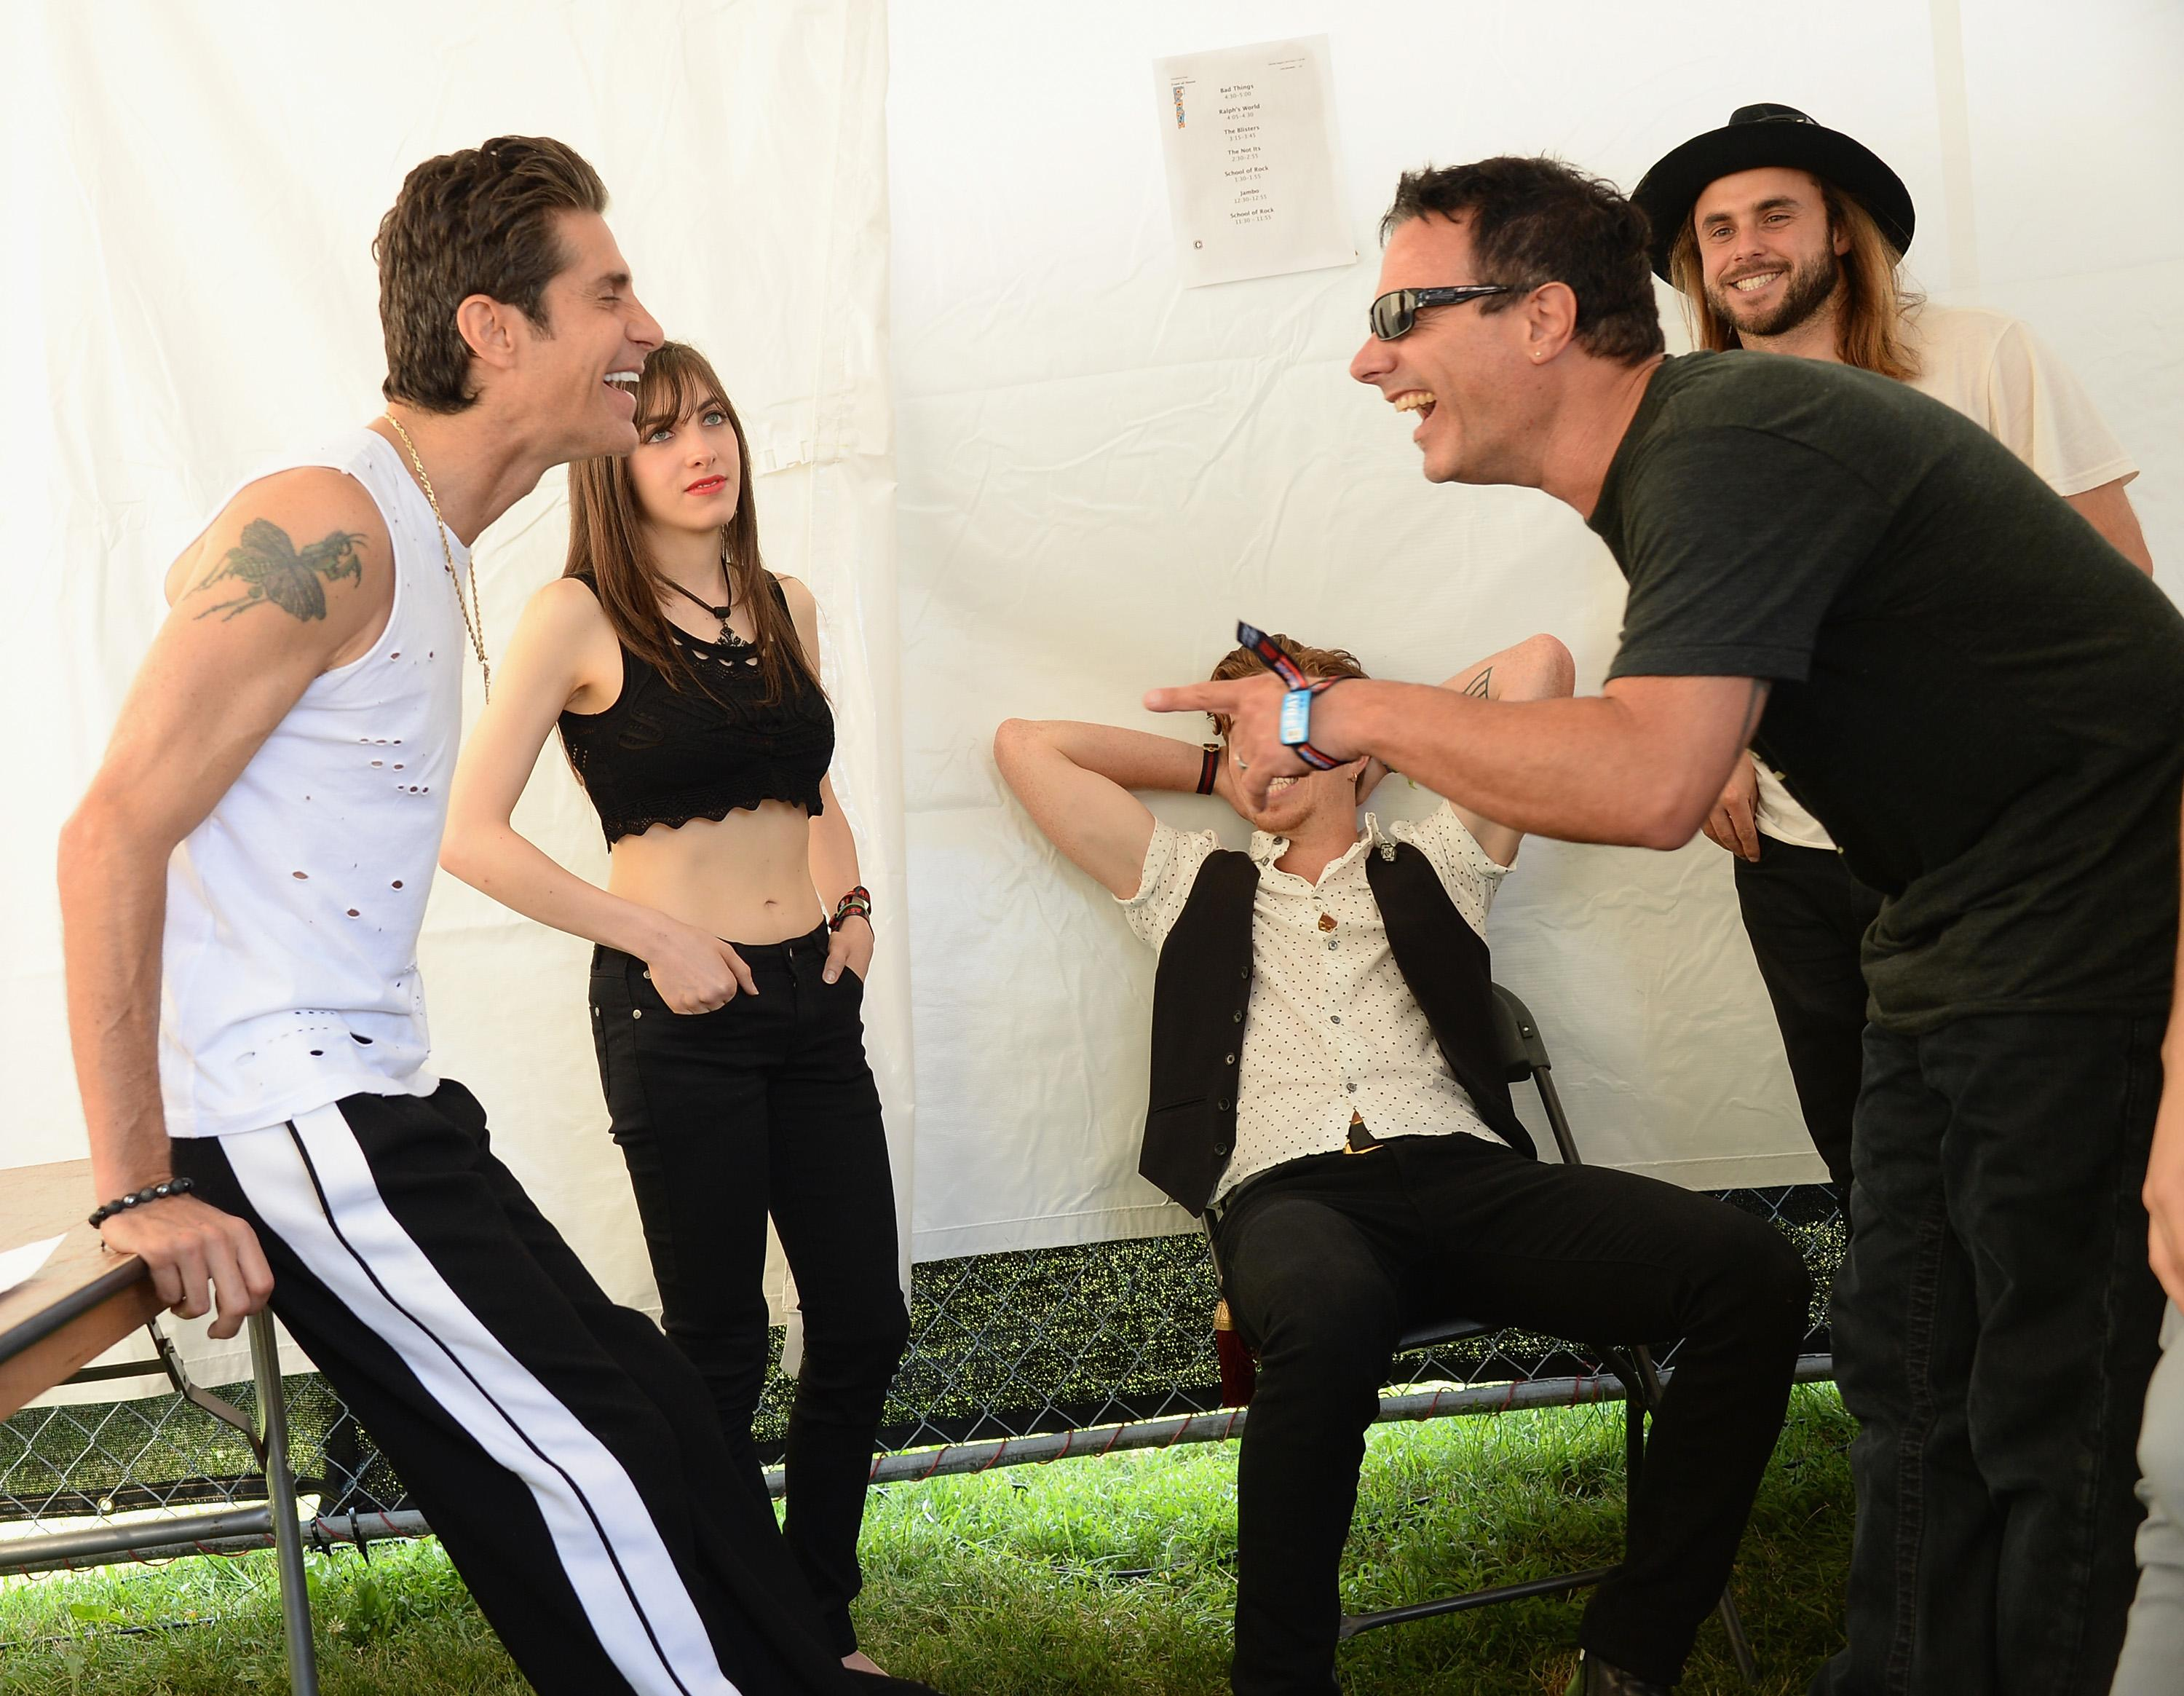 Lollapalooza founder Perry Farrell speaks with Lena Zawaideh, Shawn White and Anthony Sanudo of Bad Things during Lollapalooza 2013 at Grant Park on August 3, 2013 in Chicago, Illinois.